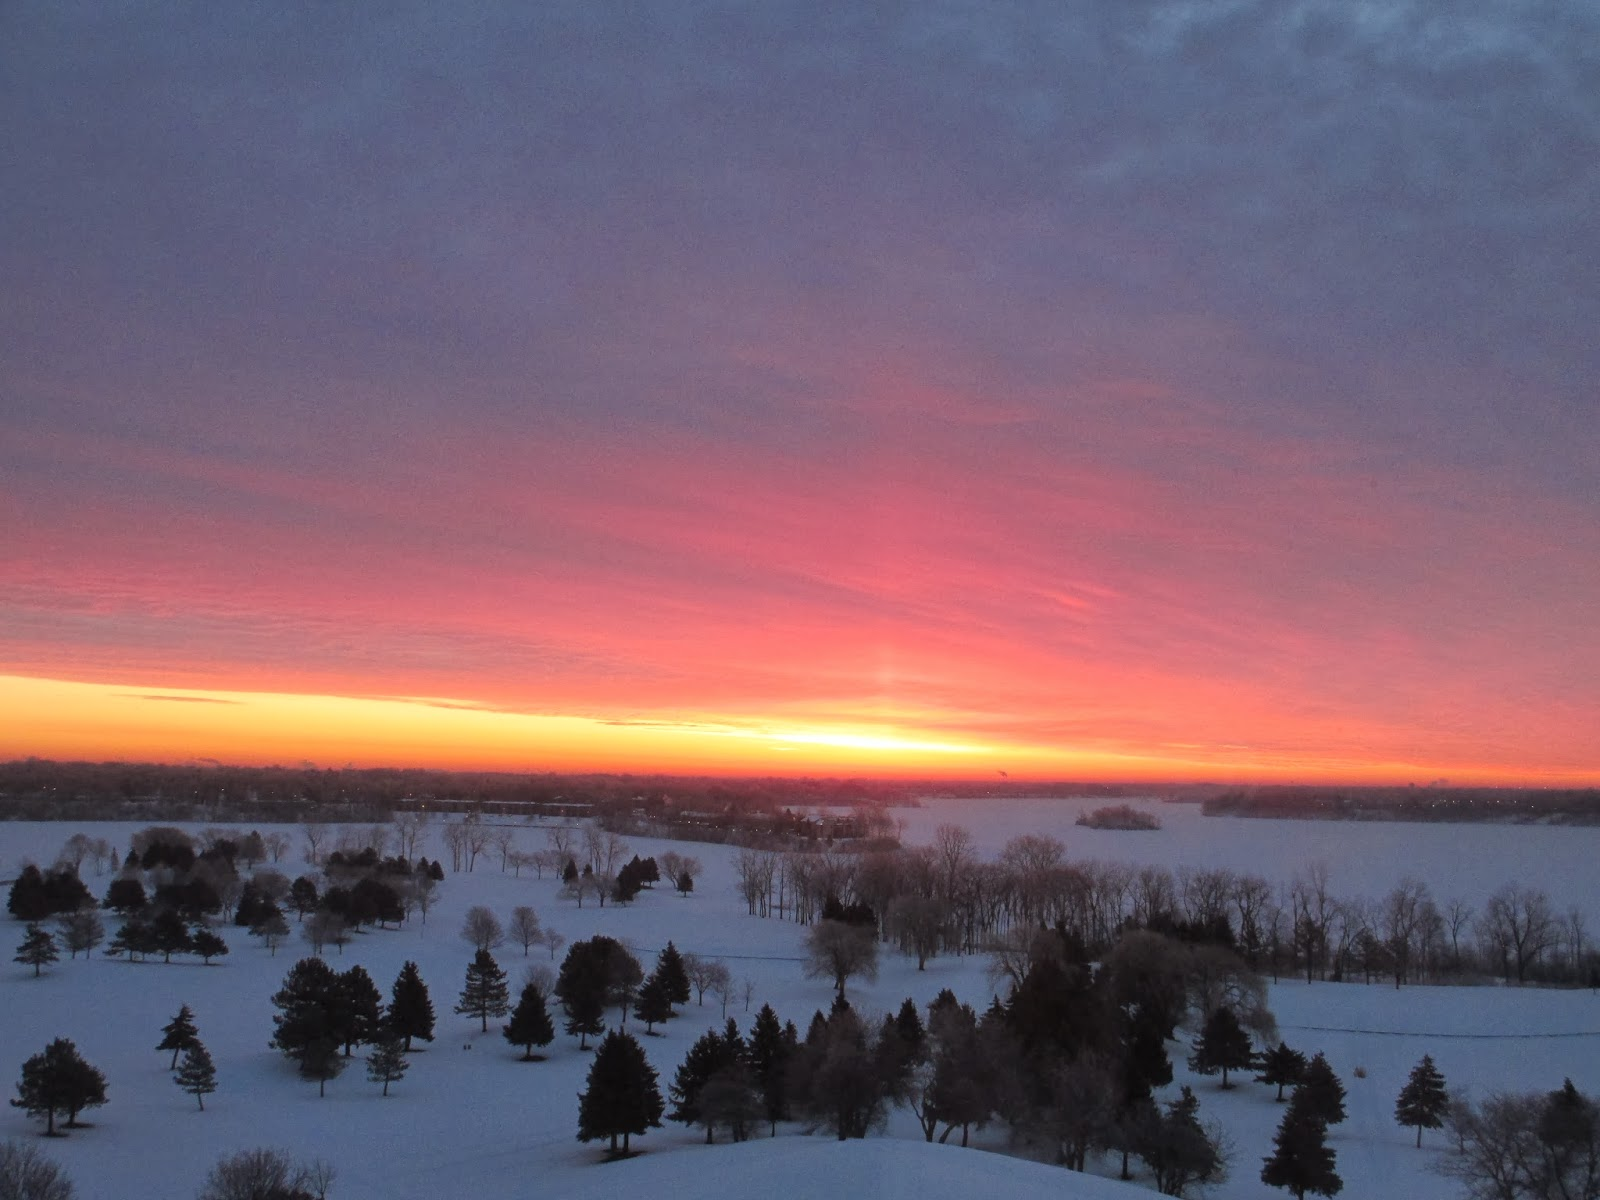 Travel reviews information ypsilanti michigan marriott sunrise from guestroom 1betcityfo Choice Image